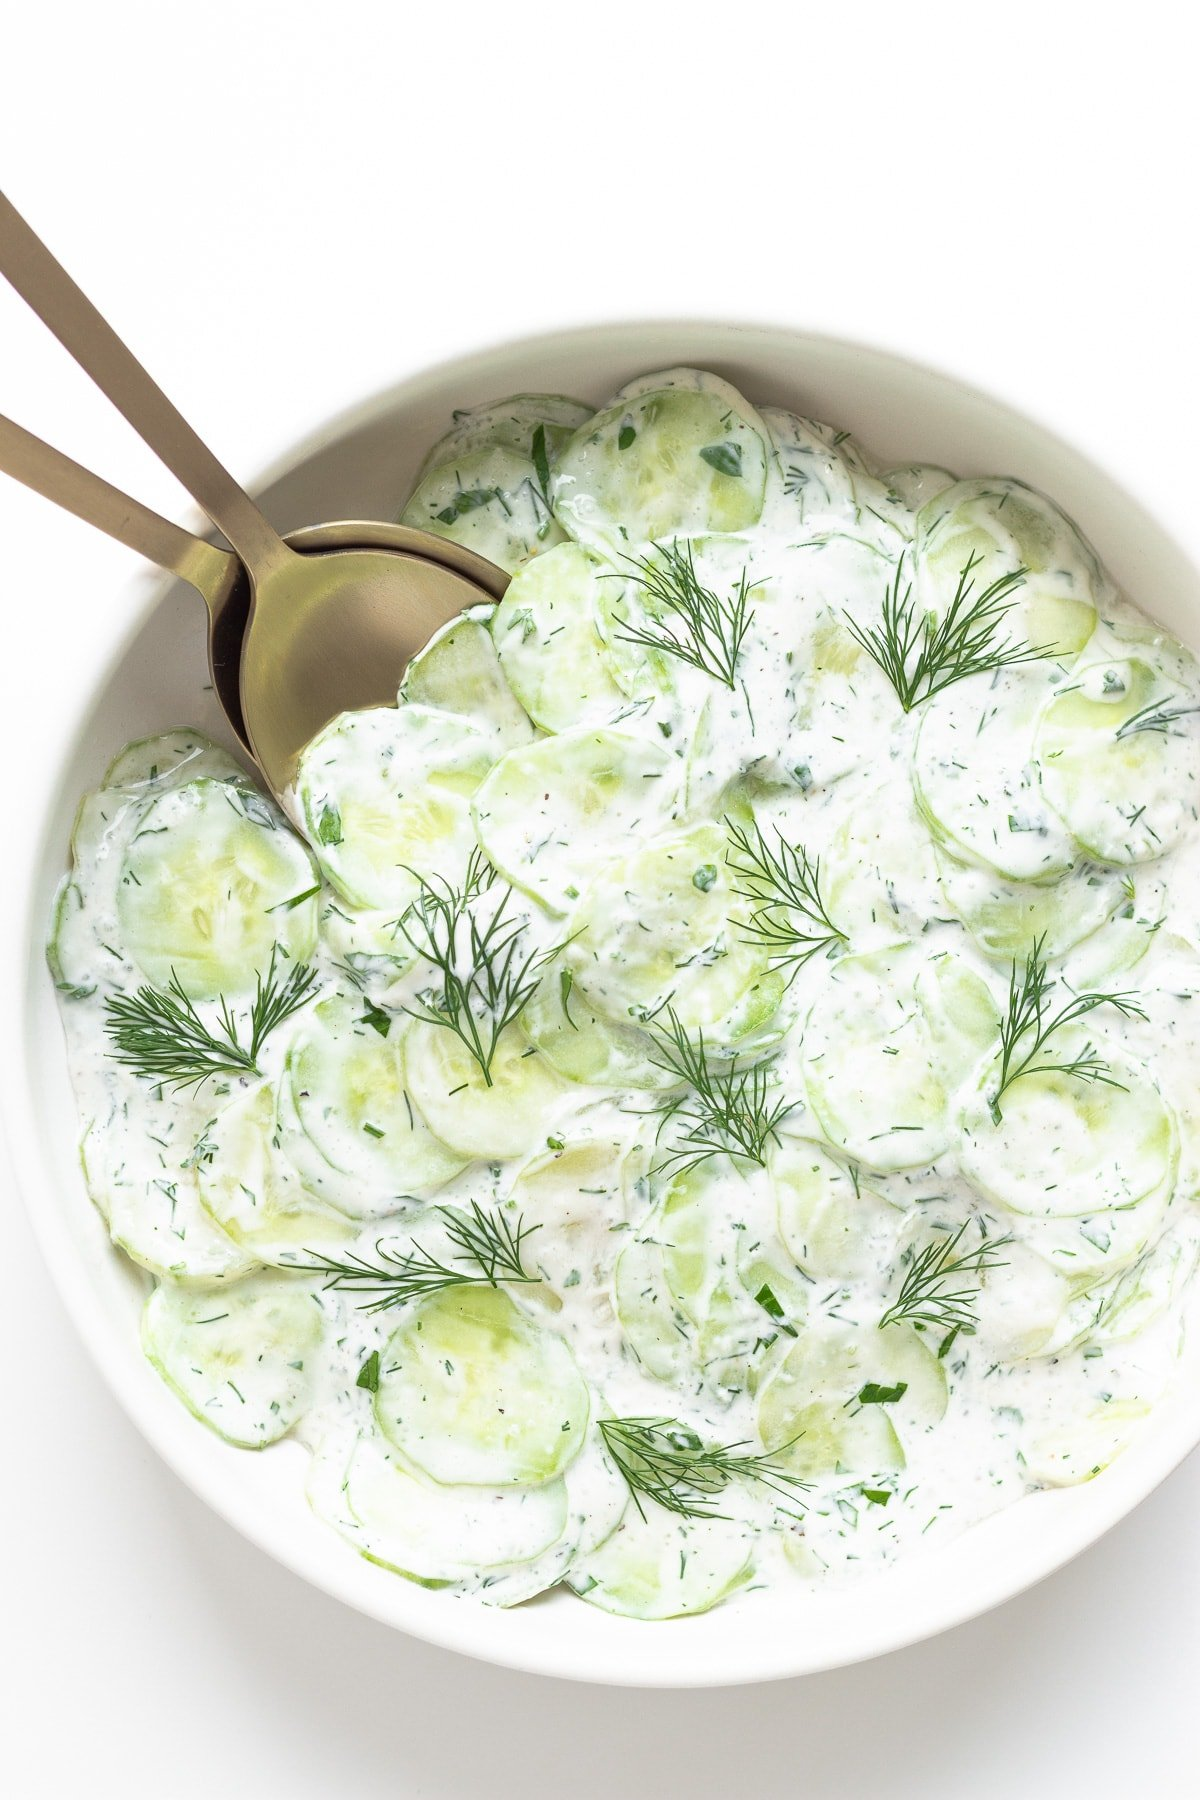 Sour cream cucumber salad in a white bowl with gold salad servers.